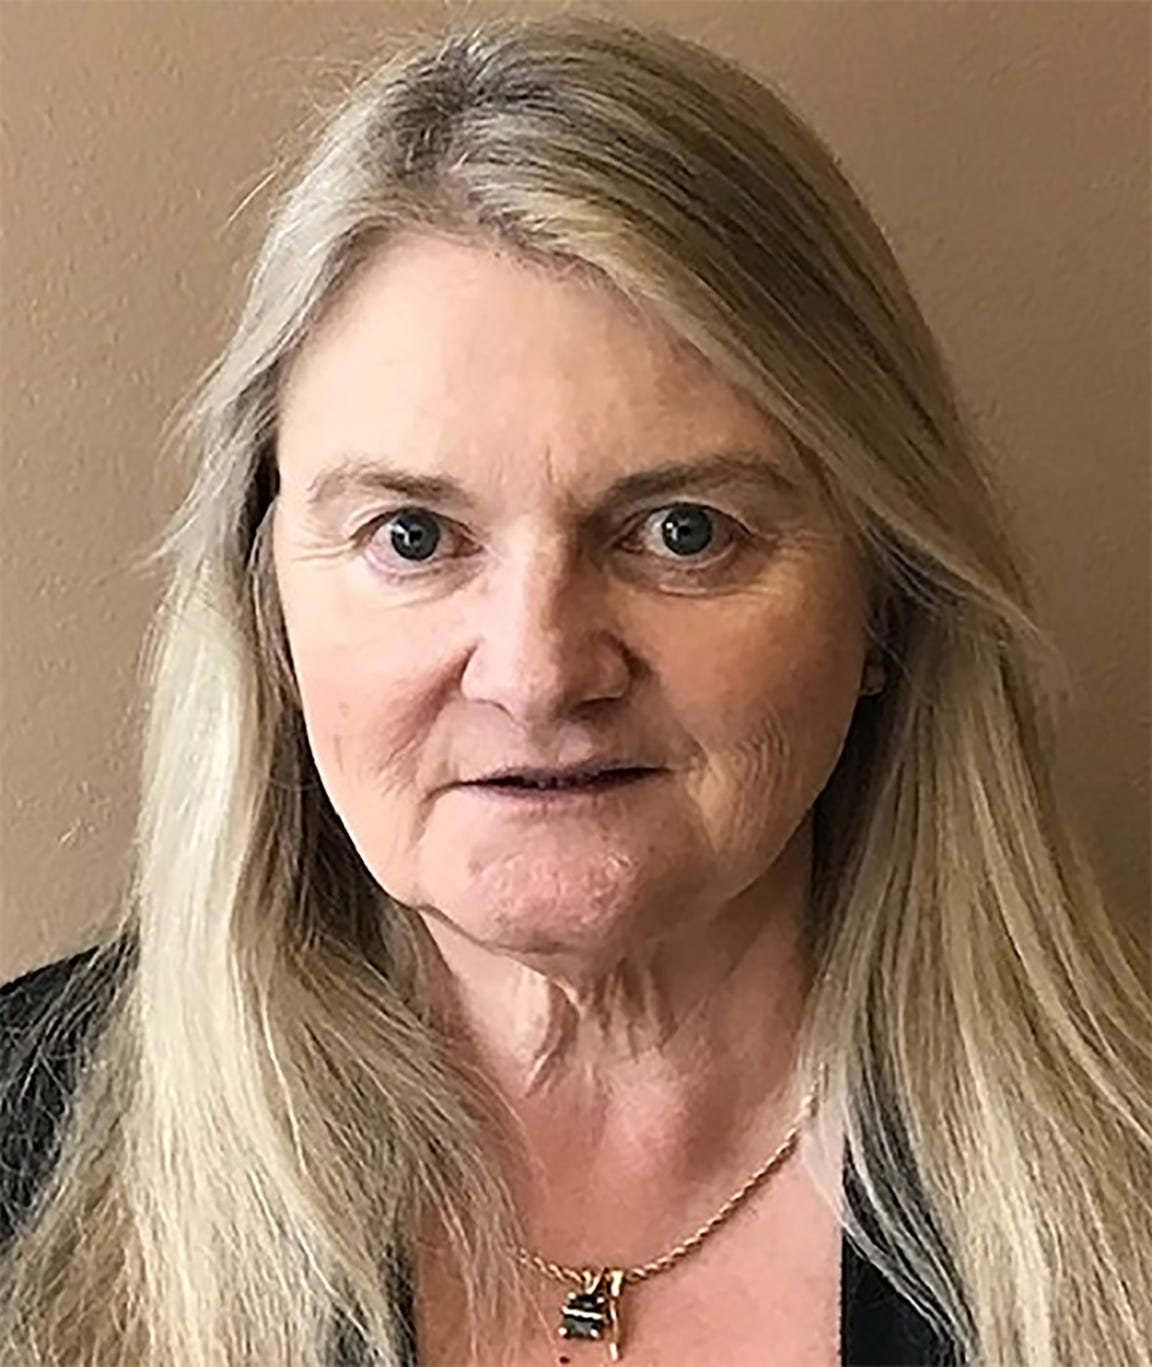 Linda Maddy, a licensed clinical social worker, is co-coordinator of the Behavioral Health Program at the Center for Policing Excellence at DPSST, where recruits learn resiliency and stress first aid tools.